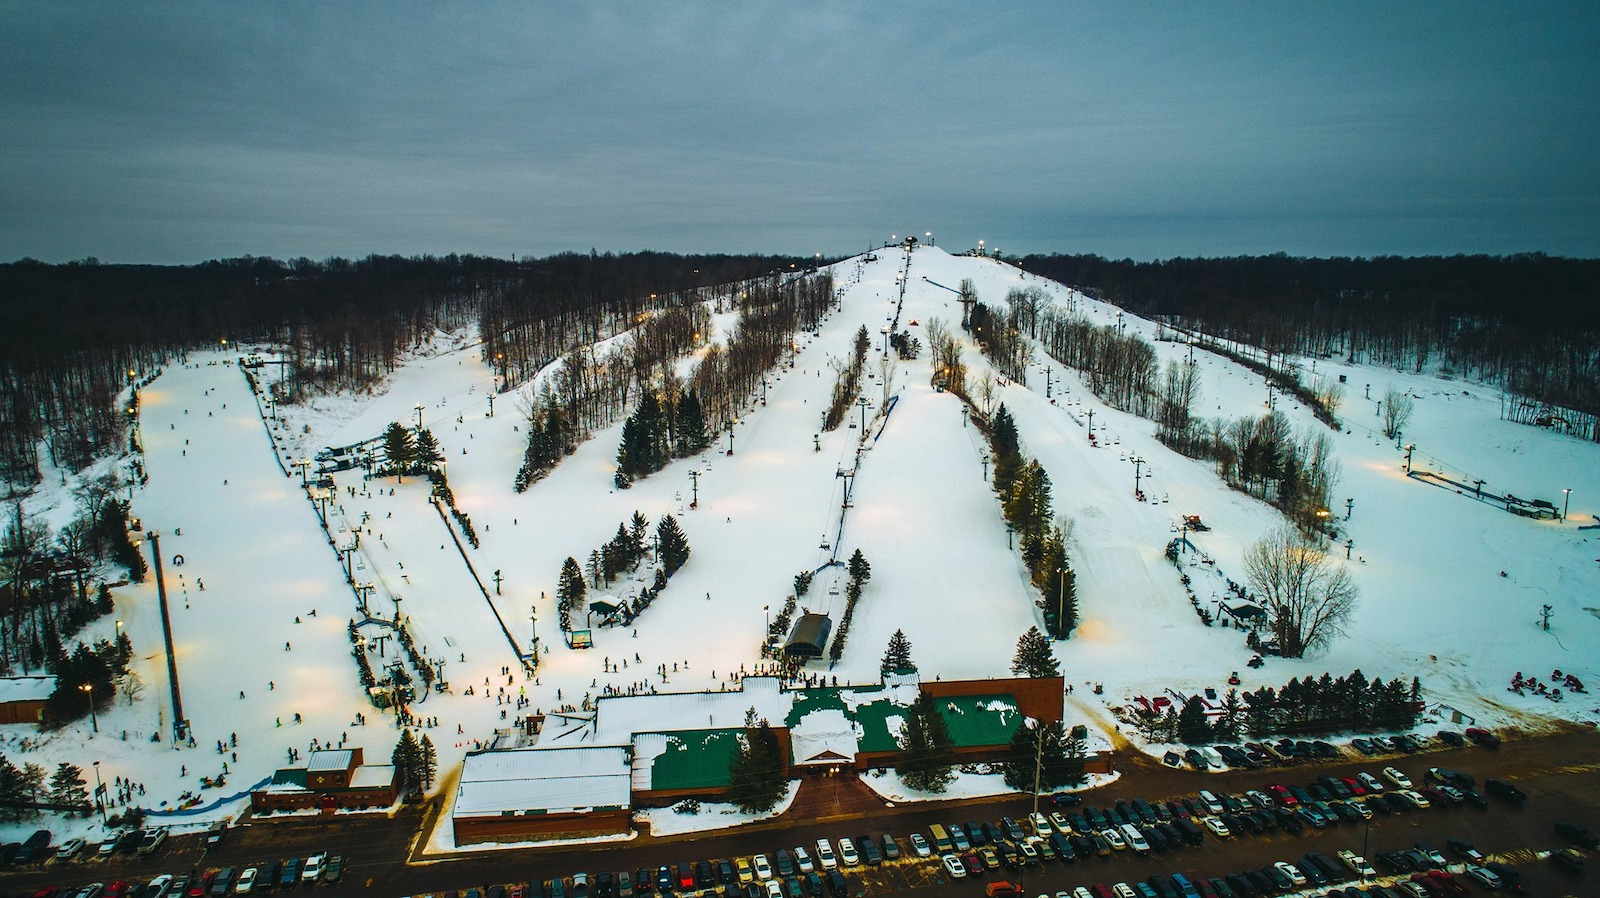 Image of aerial view of the trails at Bittersweet Ski Resort in Michigan